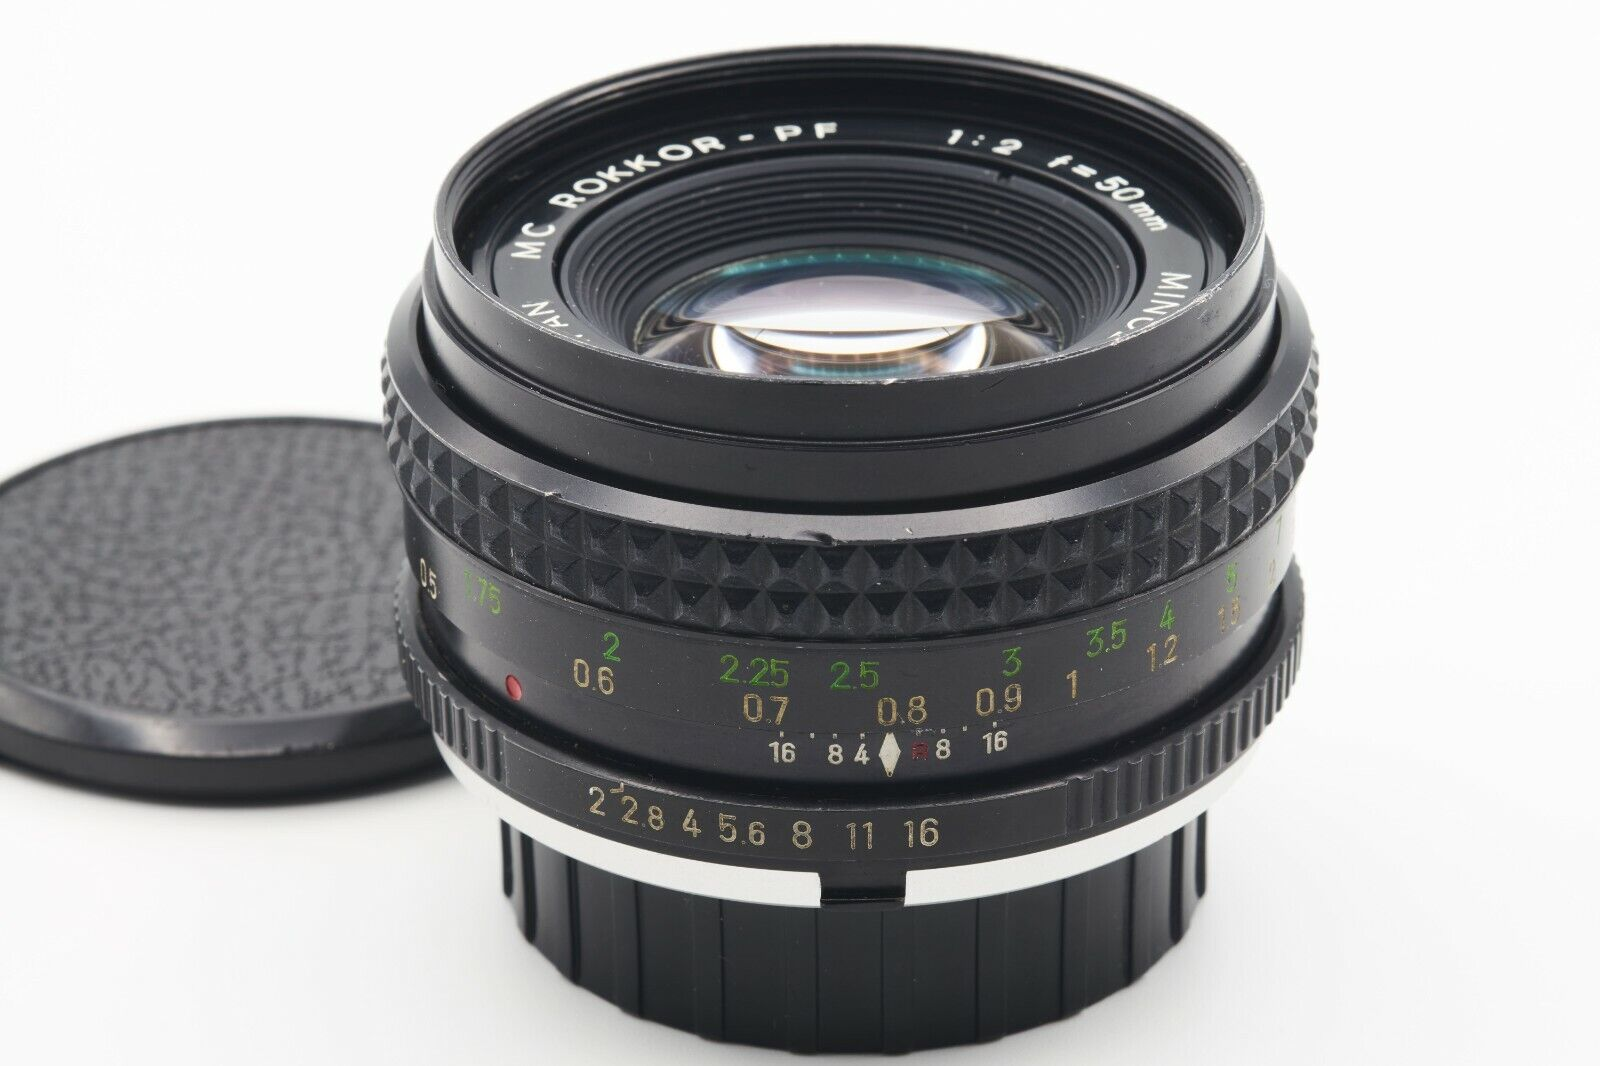 Minolta MC Rokkor-PF 50mm F2 Manual Focus Prime In MD Mount - $14.95